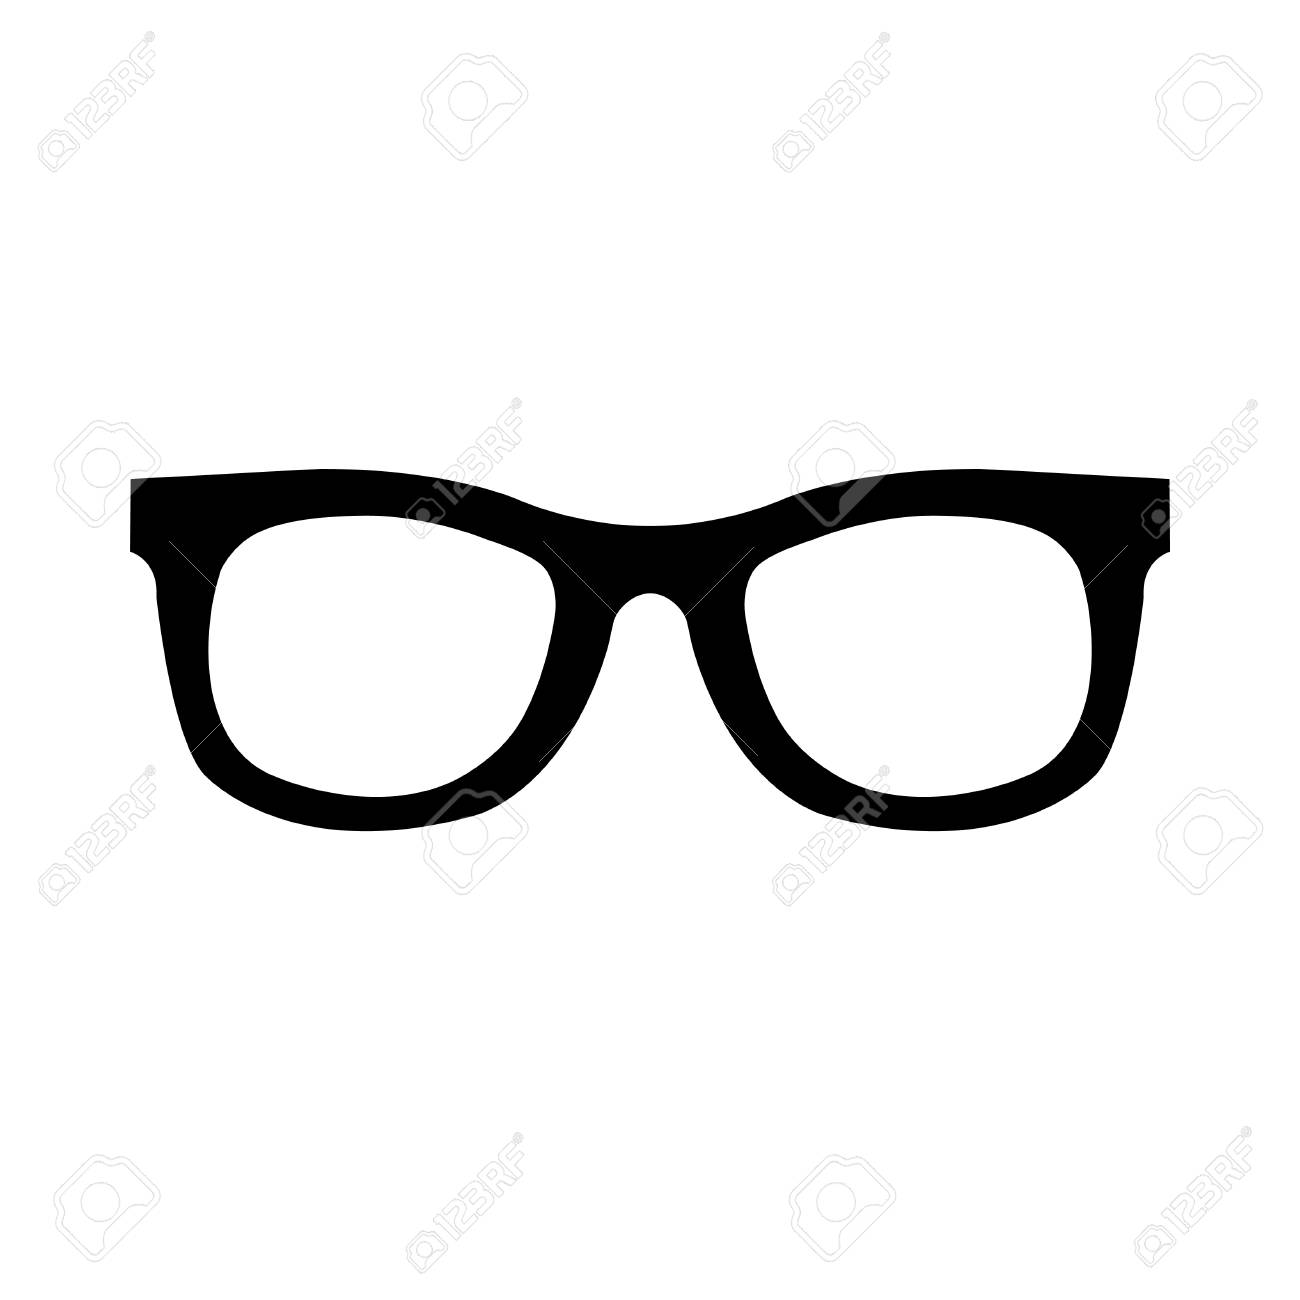 glasses vector icon royalty free cliparts vectors and stock rh 123rf com glasses vector freepik glasses vector image